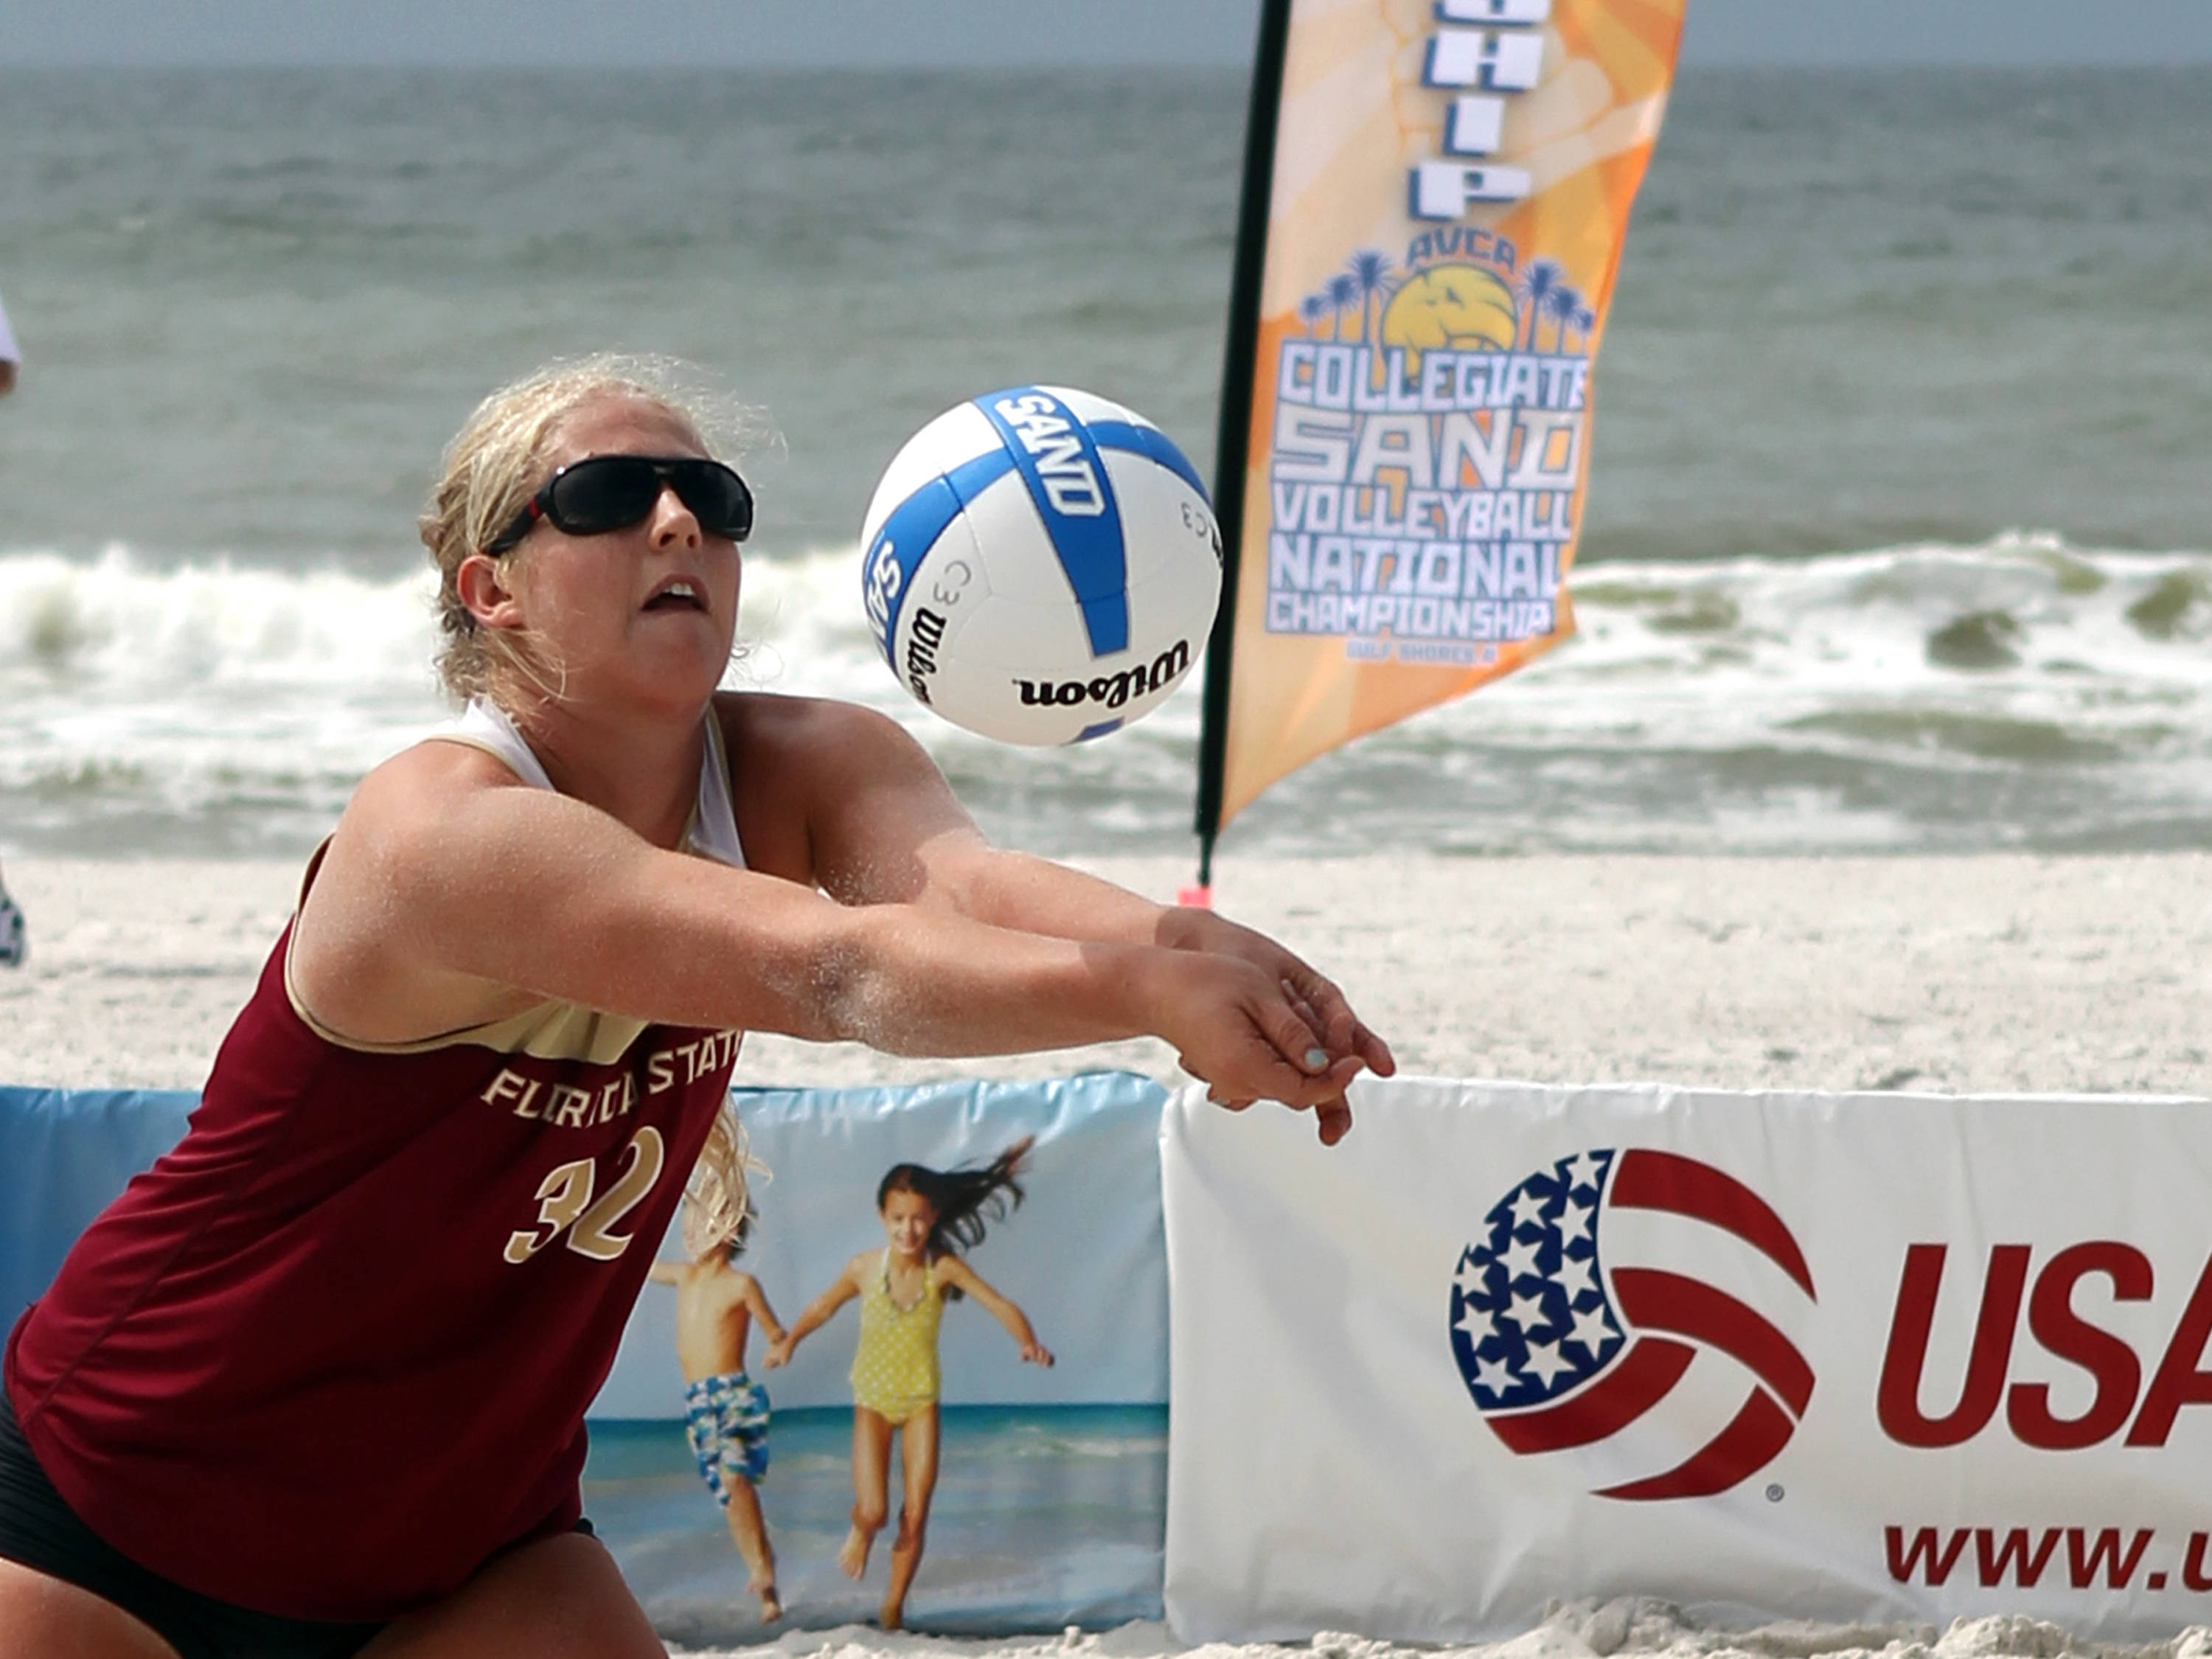 Katherine Plessy (32), AVCA Collegiate Sand Volleyball National Championships,  Gulf Shores, Alabama,05/03/13 . (Photo by Steve Musco)